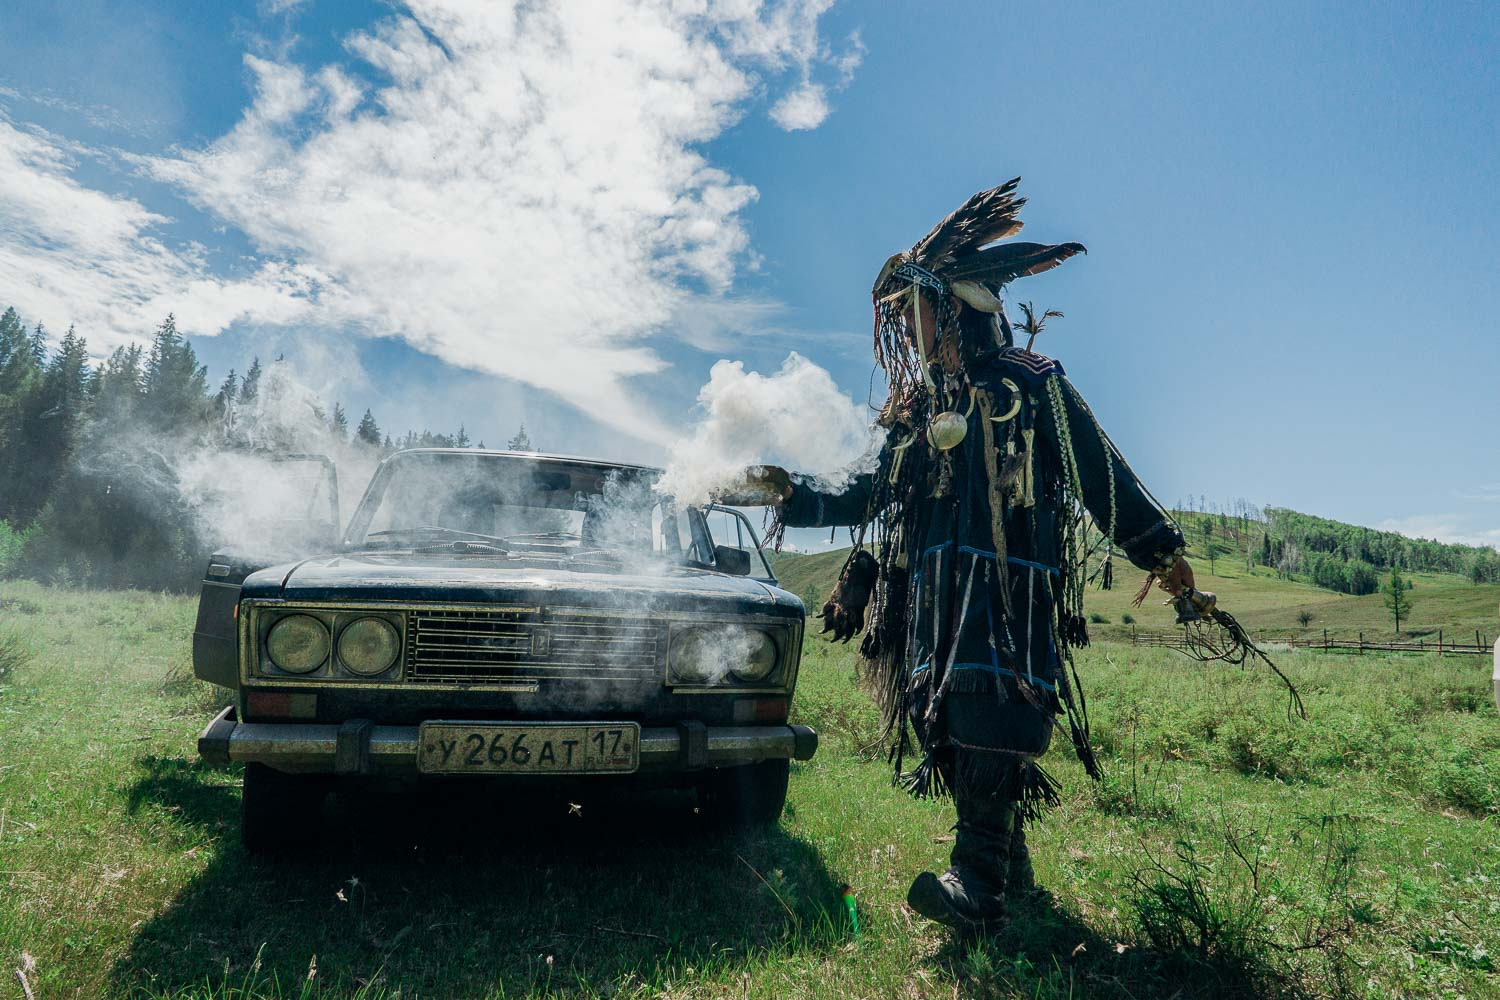 Shamans of Siberia - Photo by Yuriy Ogarkov-001-2.JPG